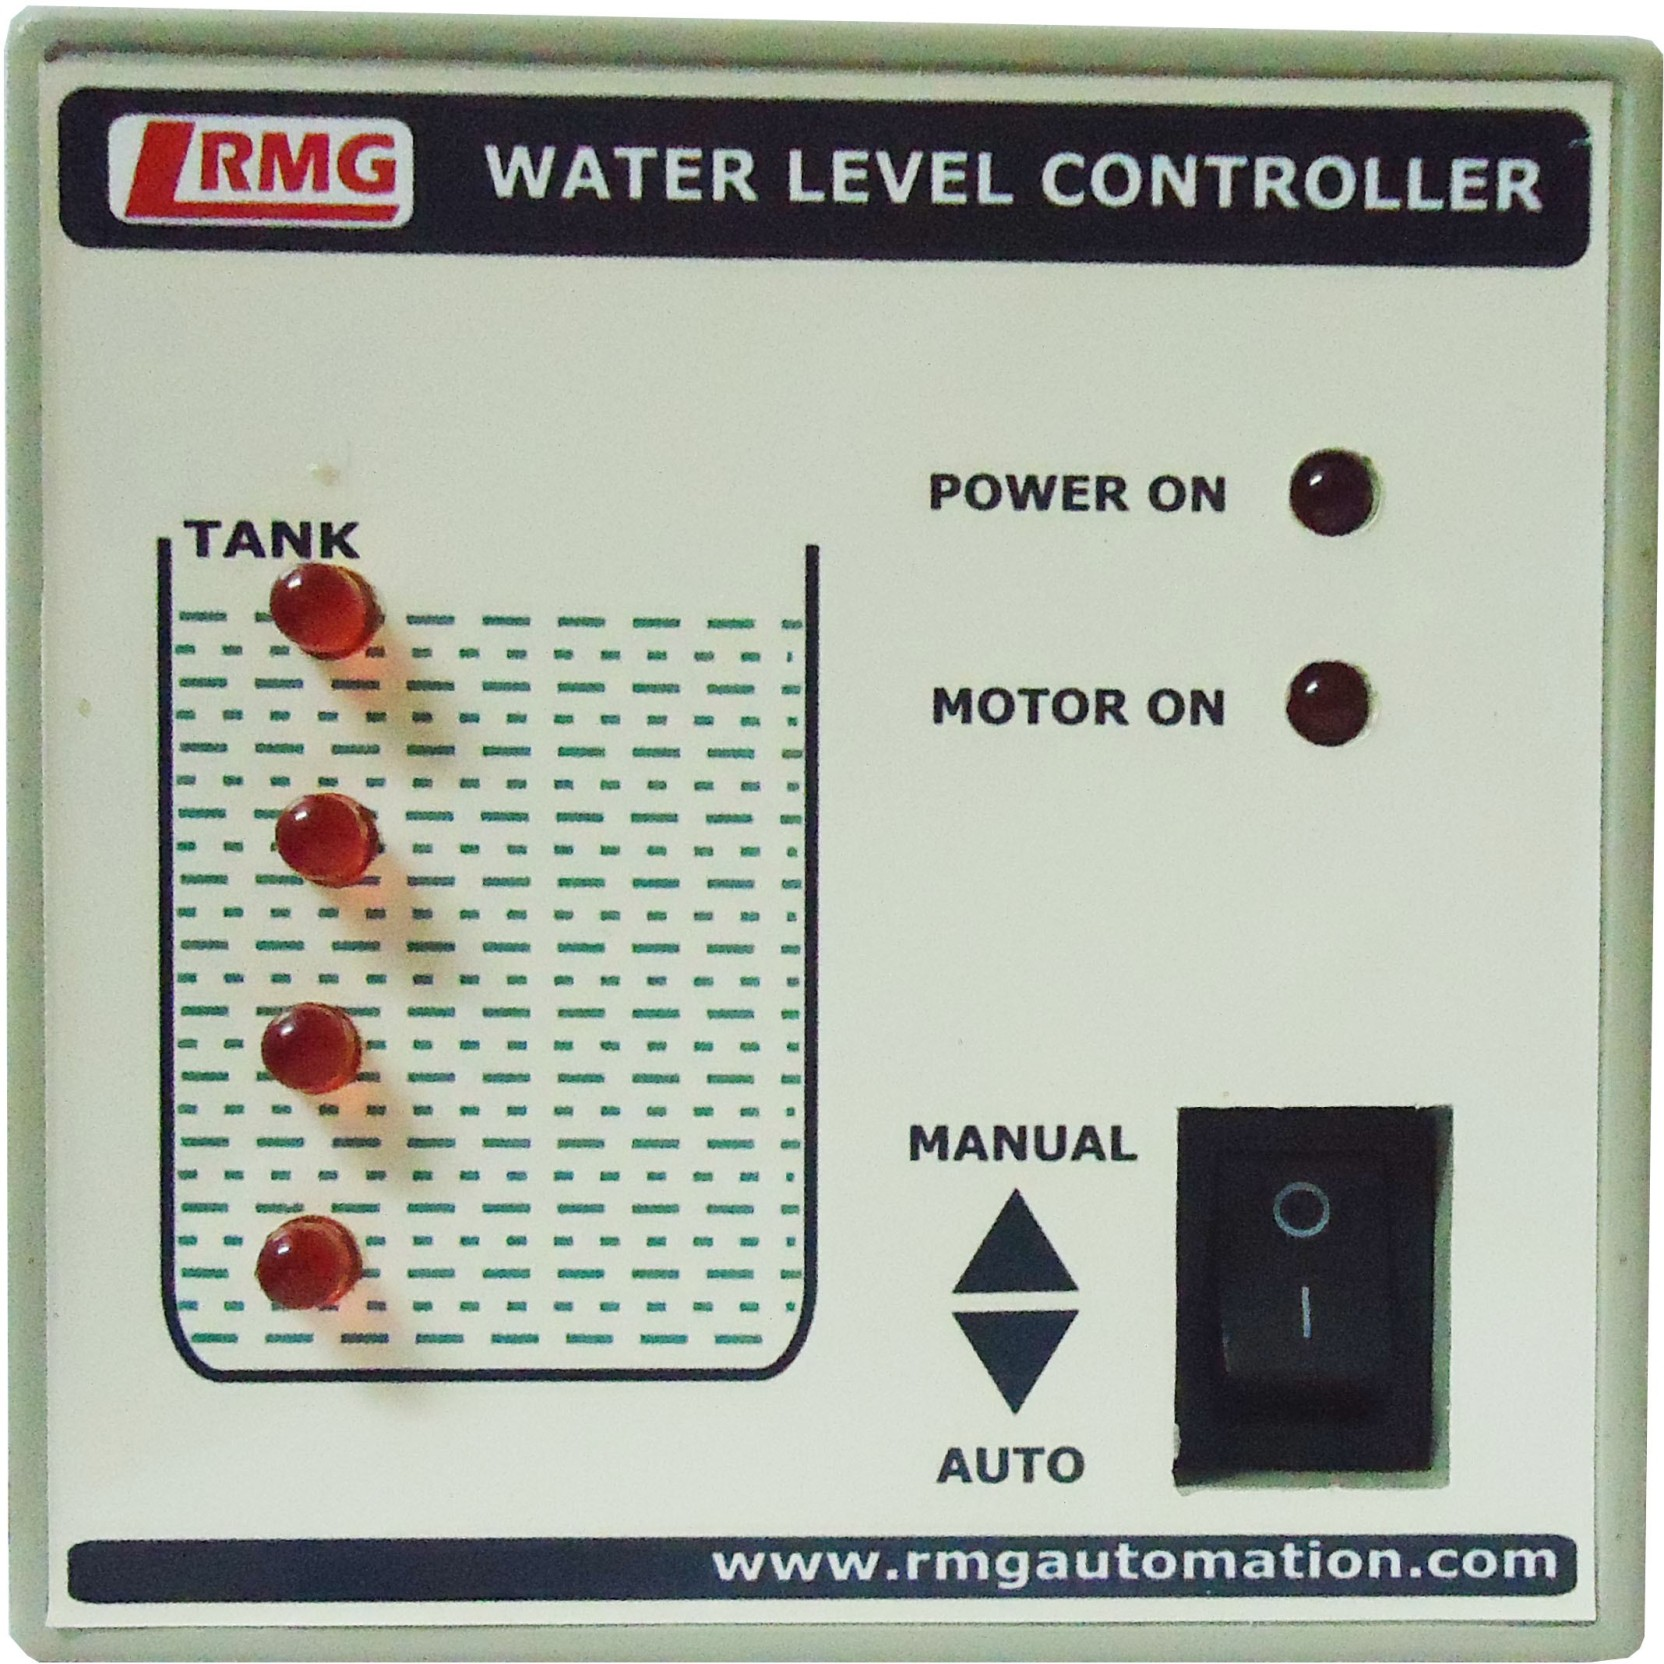 Rmg Automatic Water Level Controller With Indicator For Motor Pump Simple Circuit Diagram Add To Cart